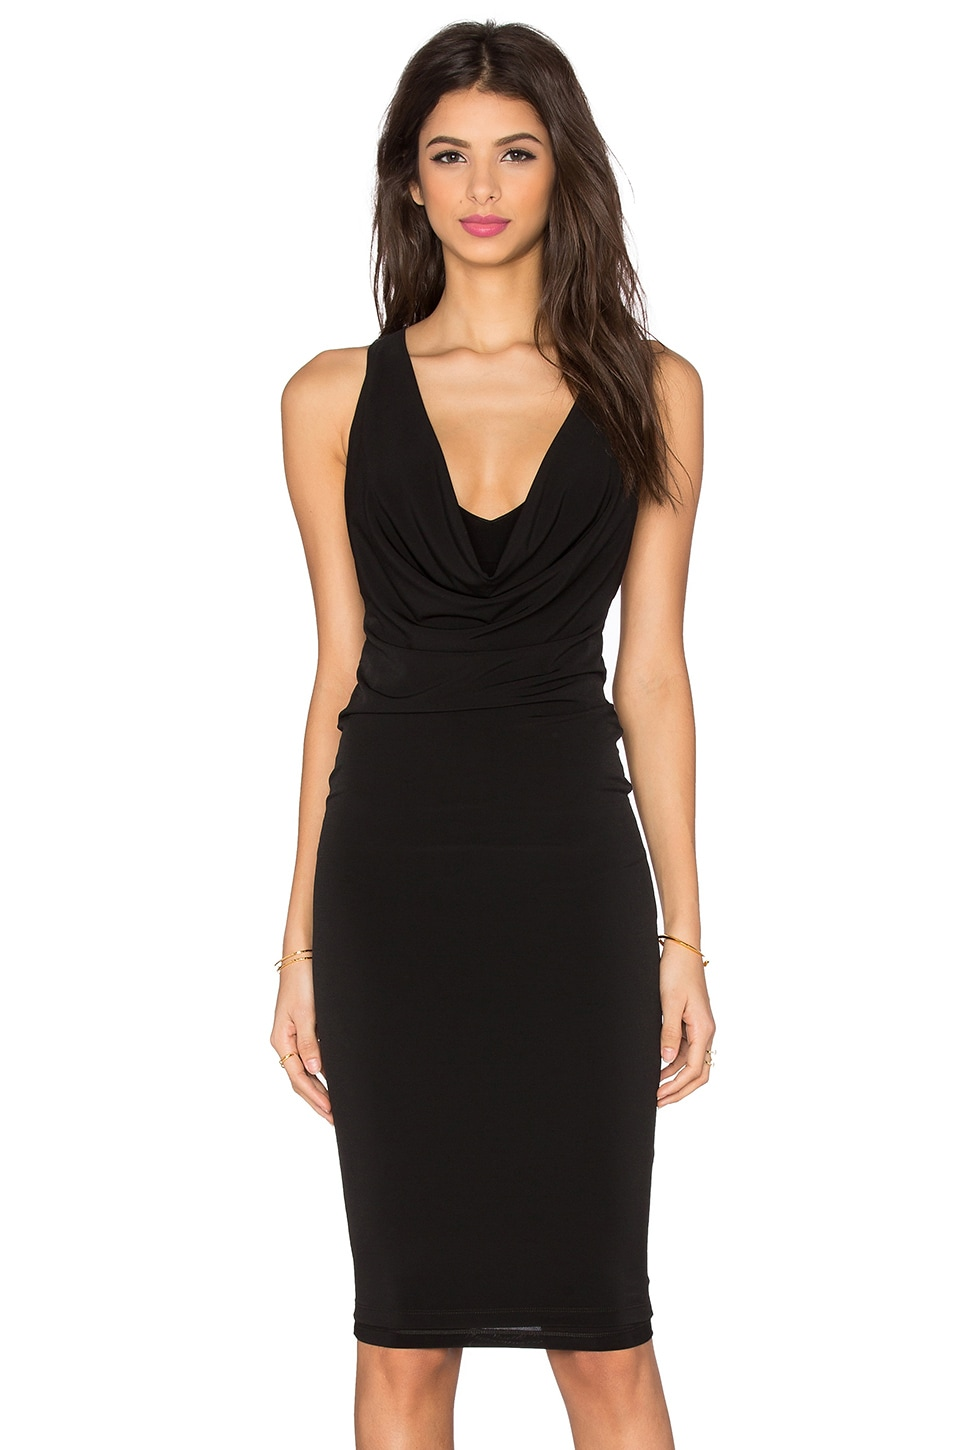 Nookie Halle Drape Dress in Black